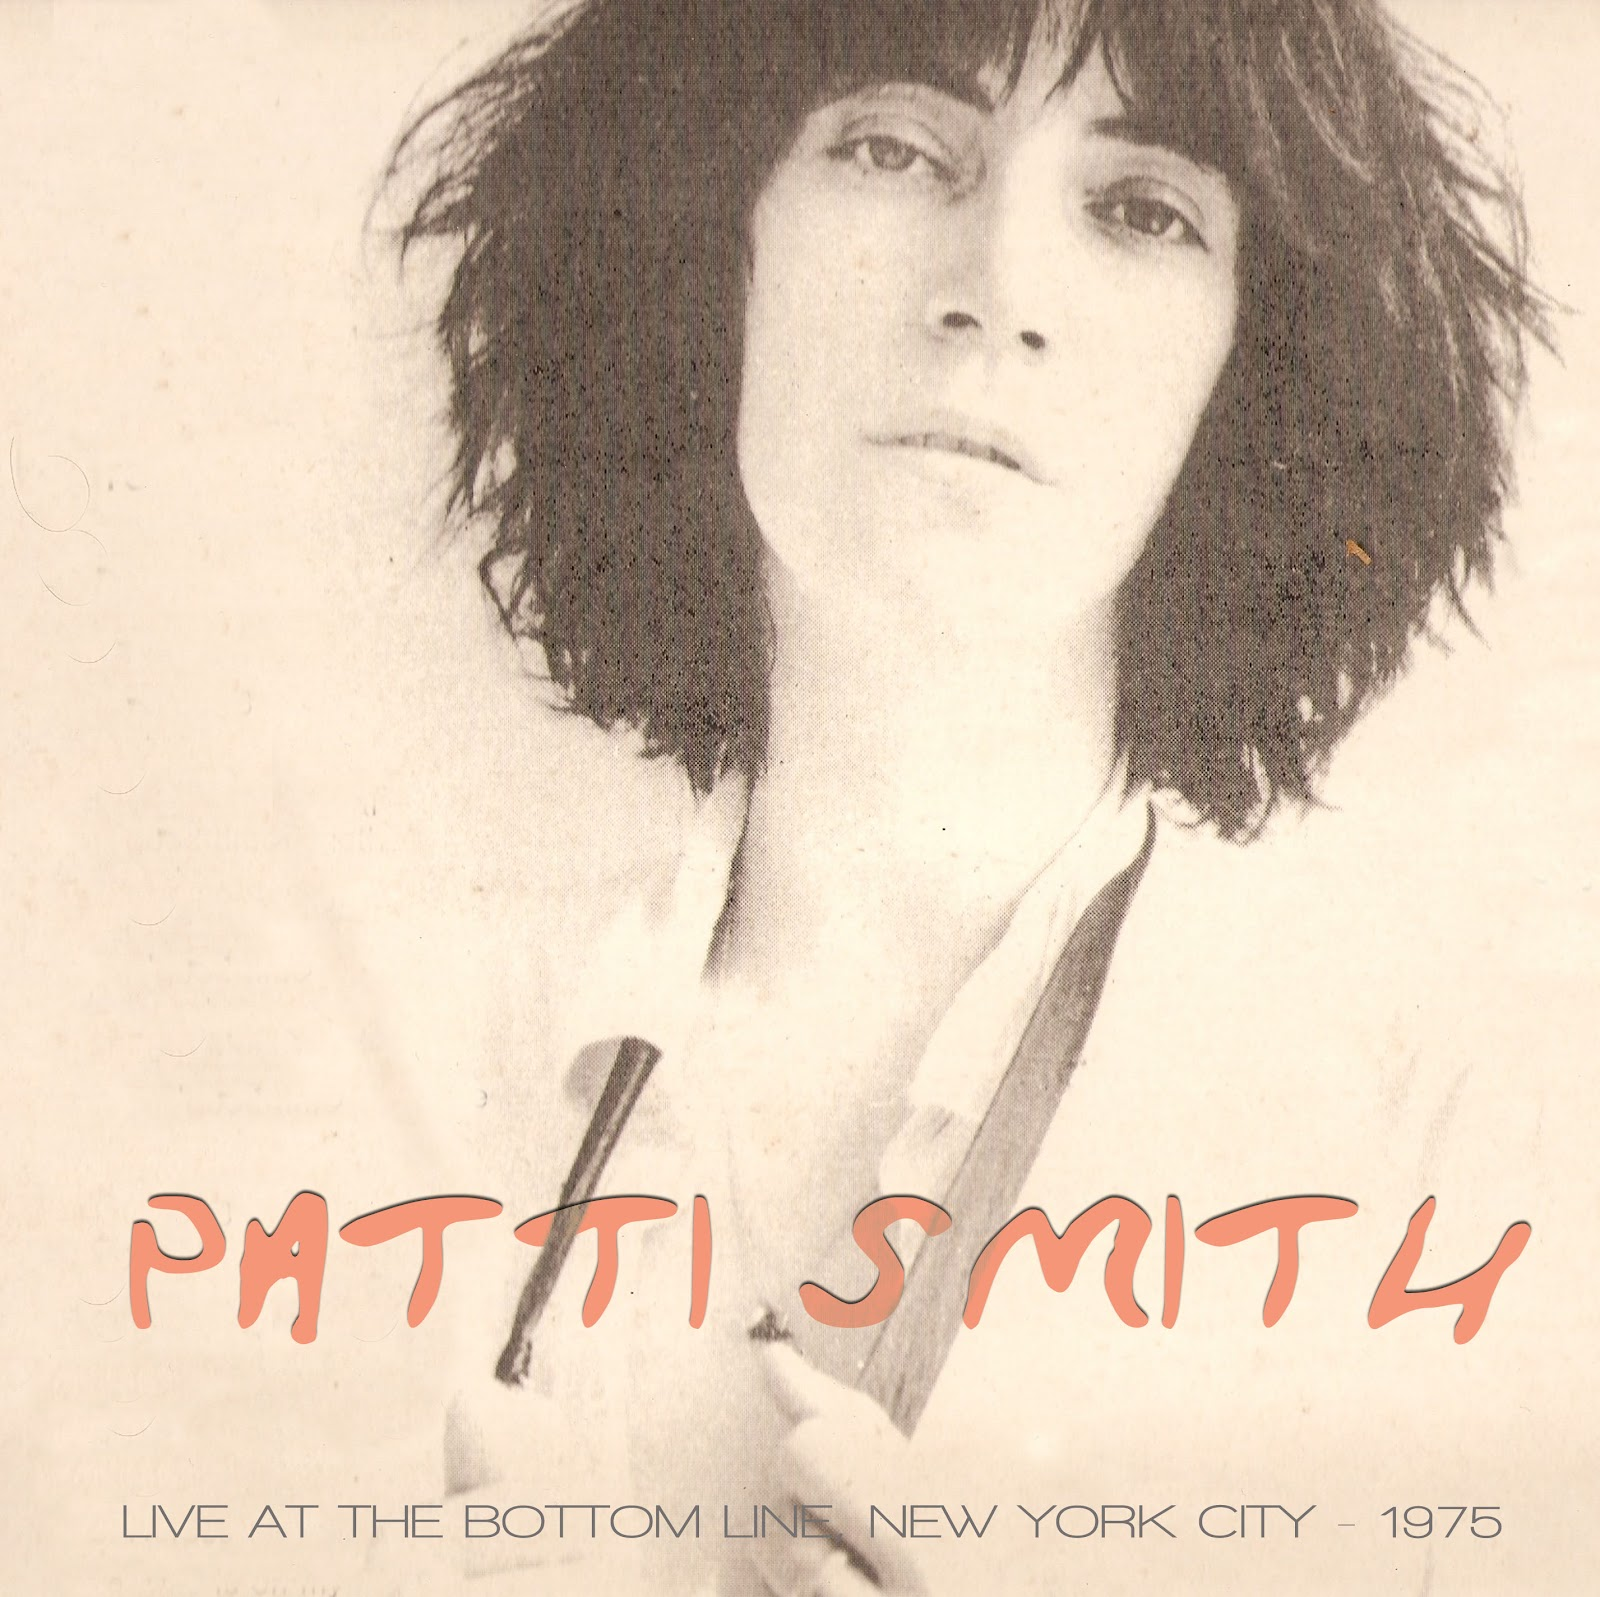 patti+smith+75+nyc+1